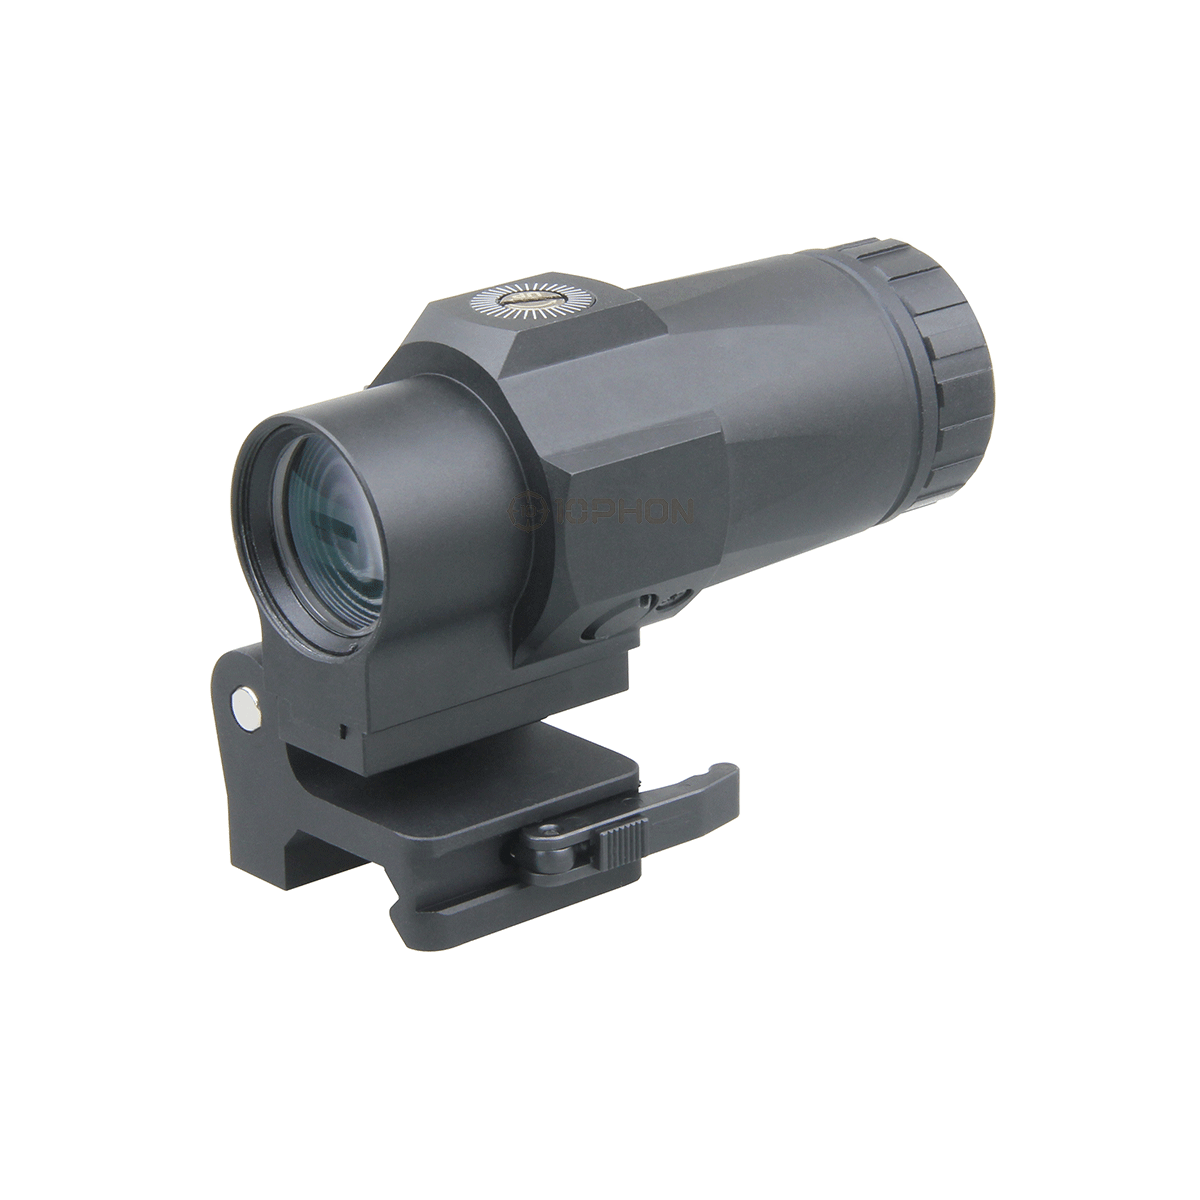 T-080MG 10PHON ASI 3x Magnifier with Flip to Side QD Mount Ring Featured Image